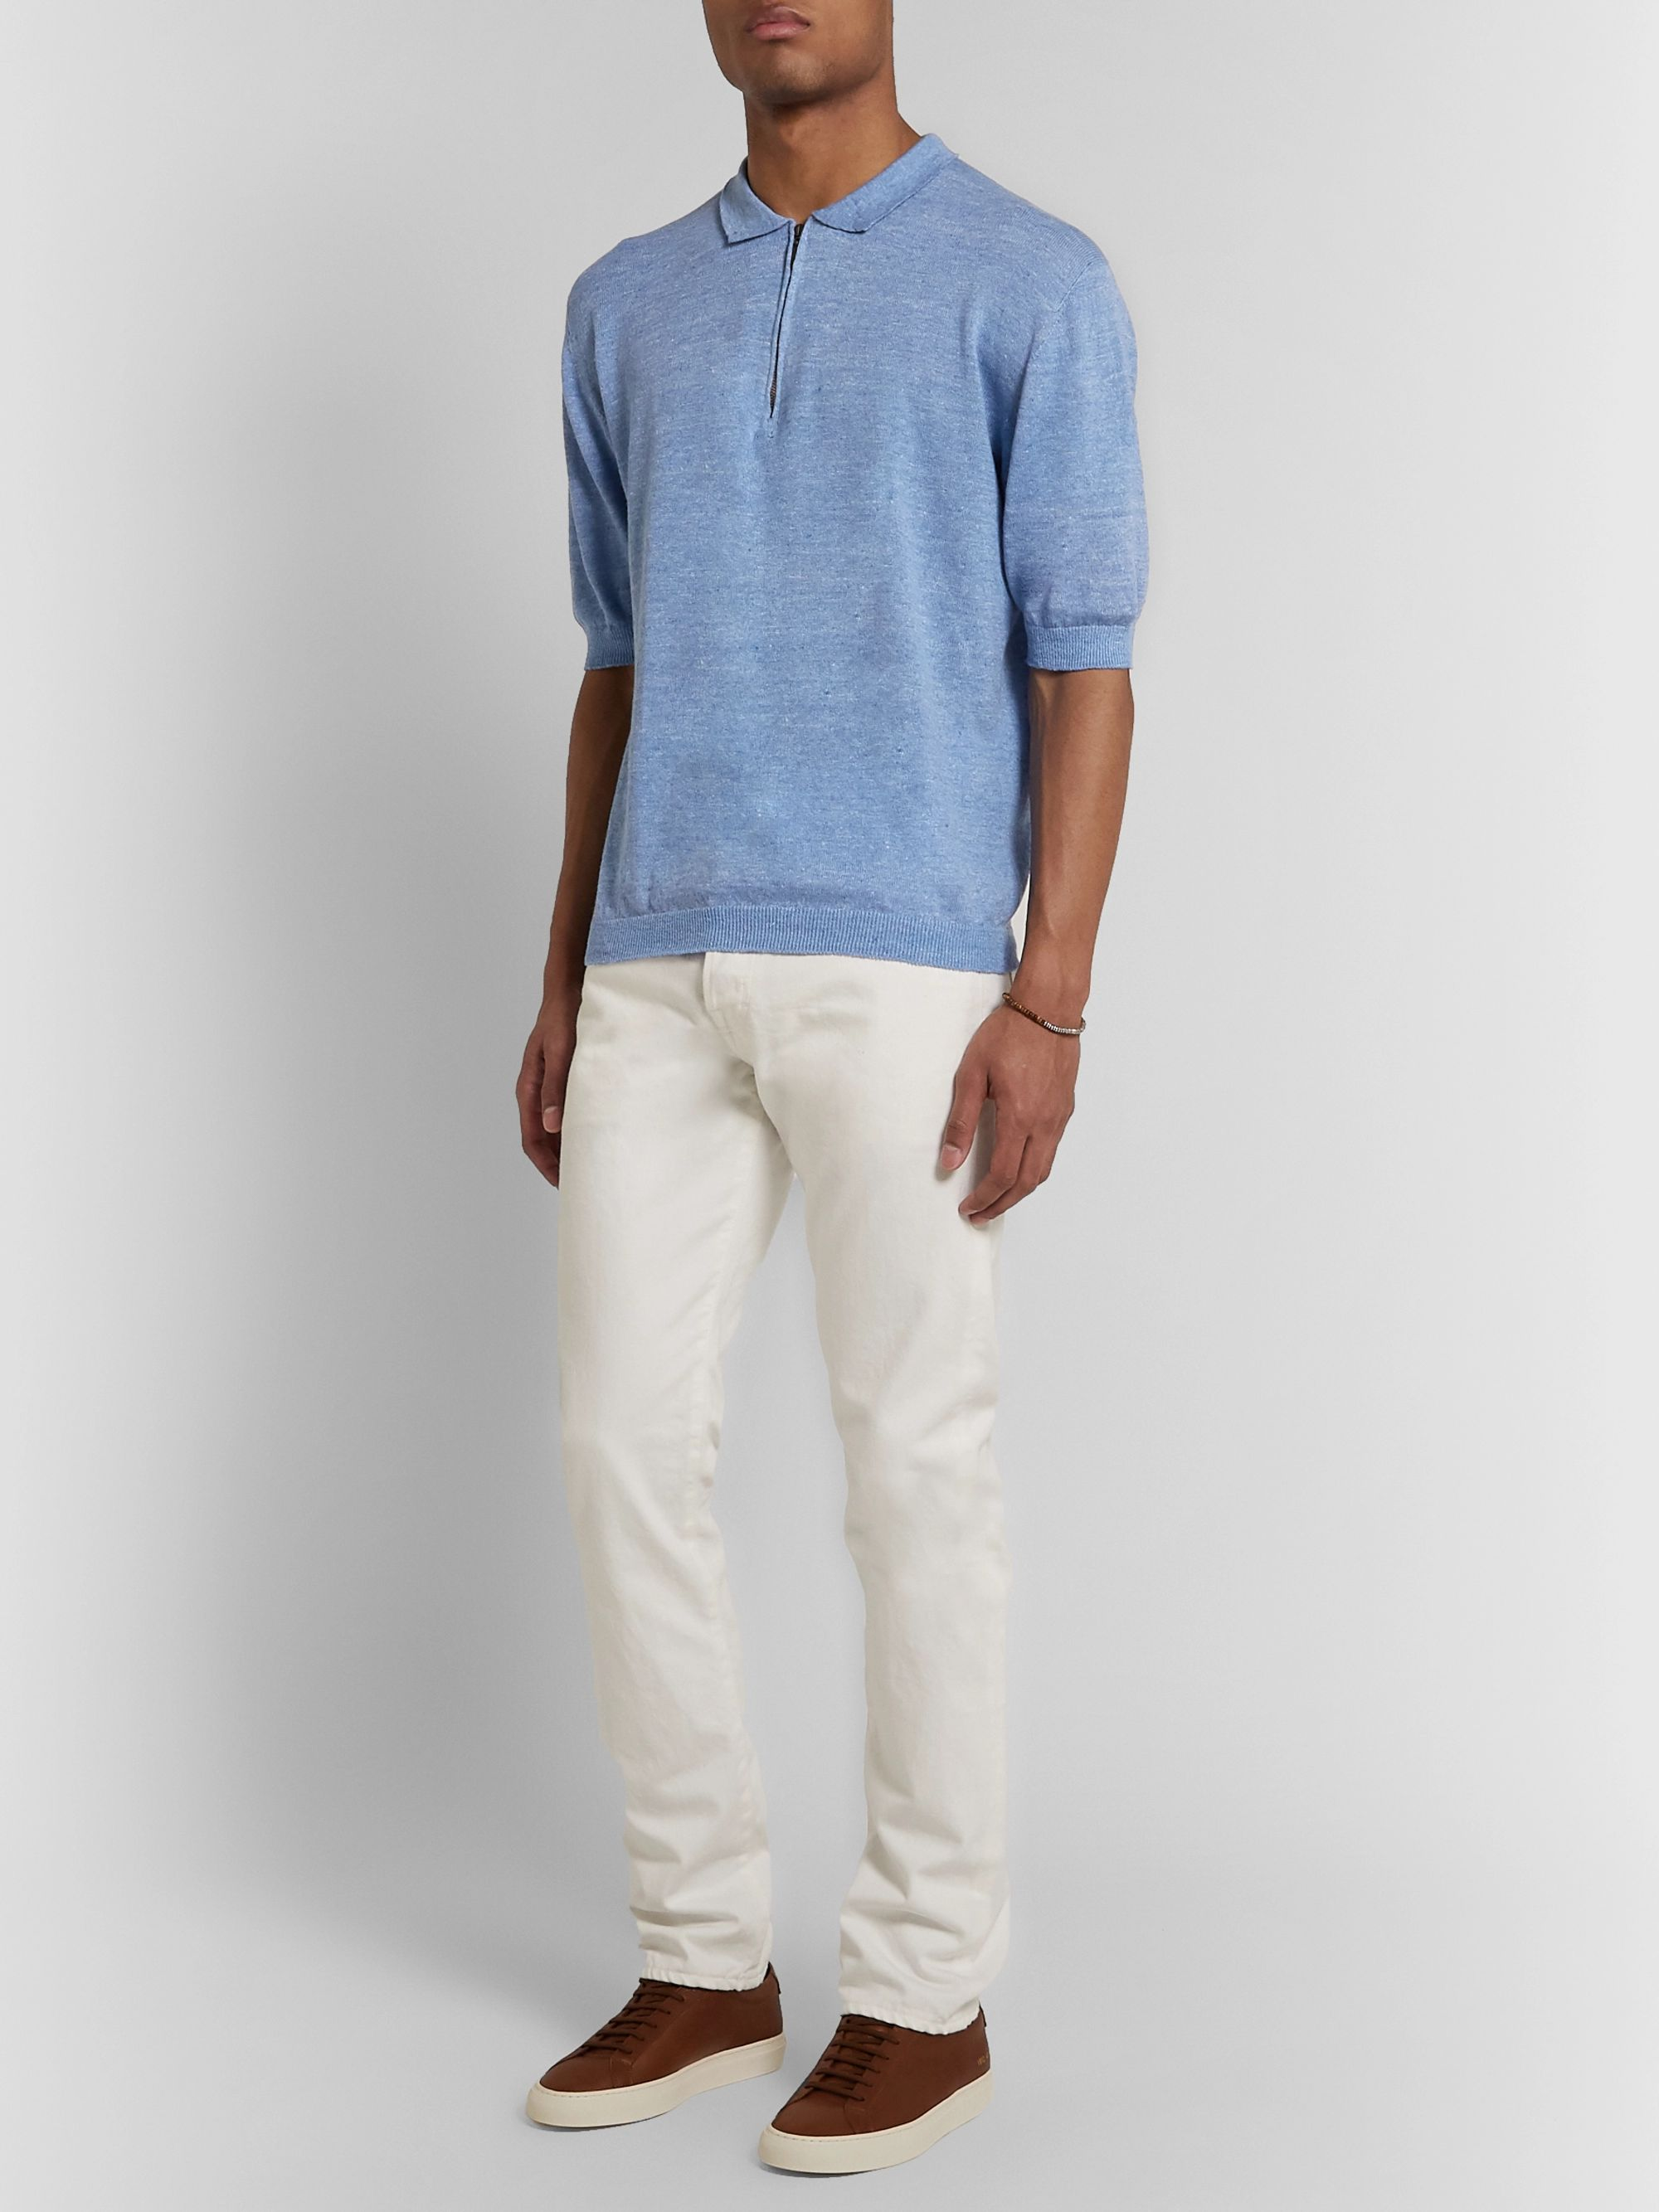 Inis Meáin Knitted Linen and Cotton-Blend Half-Zip Polo Shirt